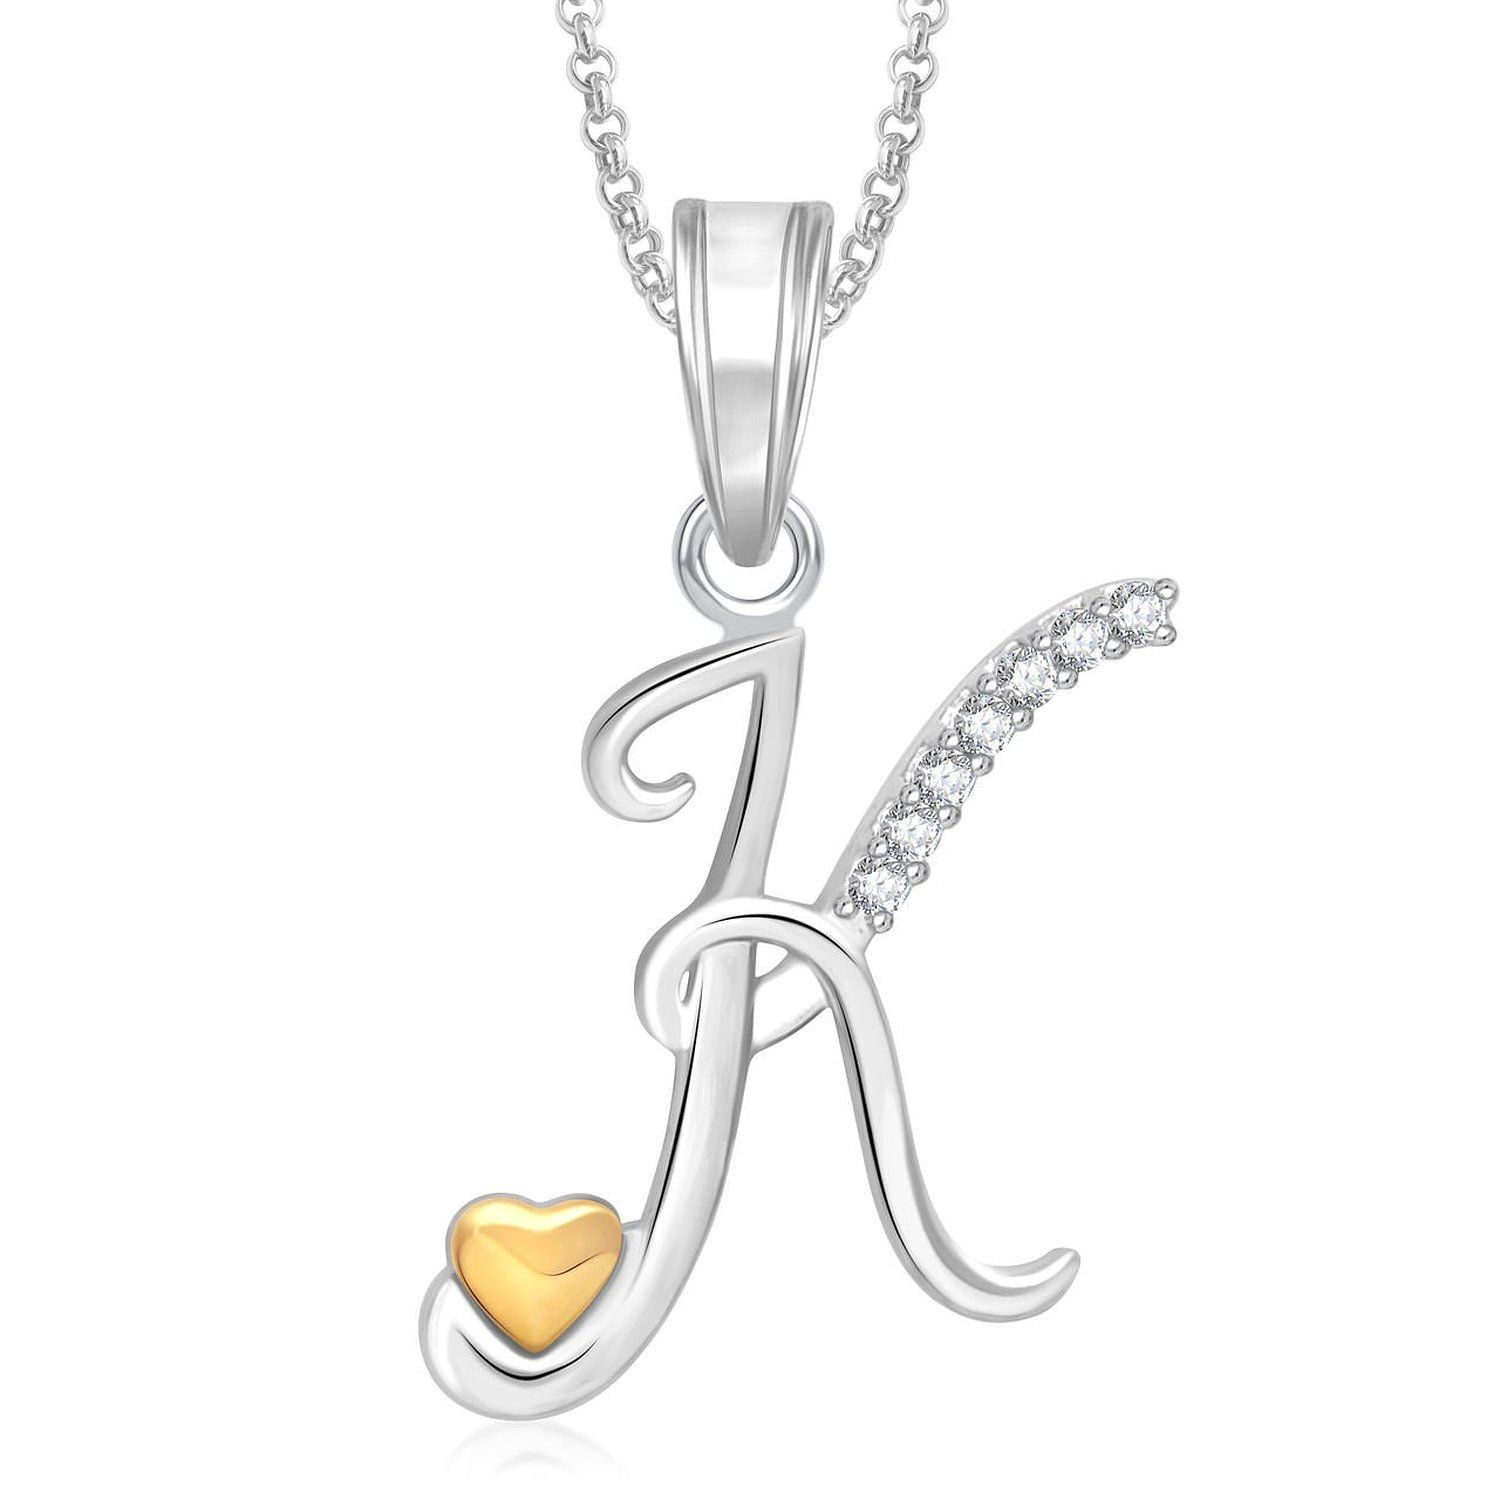 Meenaz Gold Silver Plated K Letter Pendant Locket Alphabet Heart